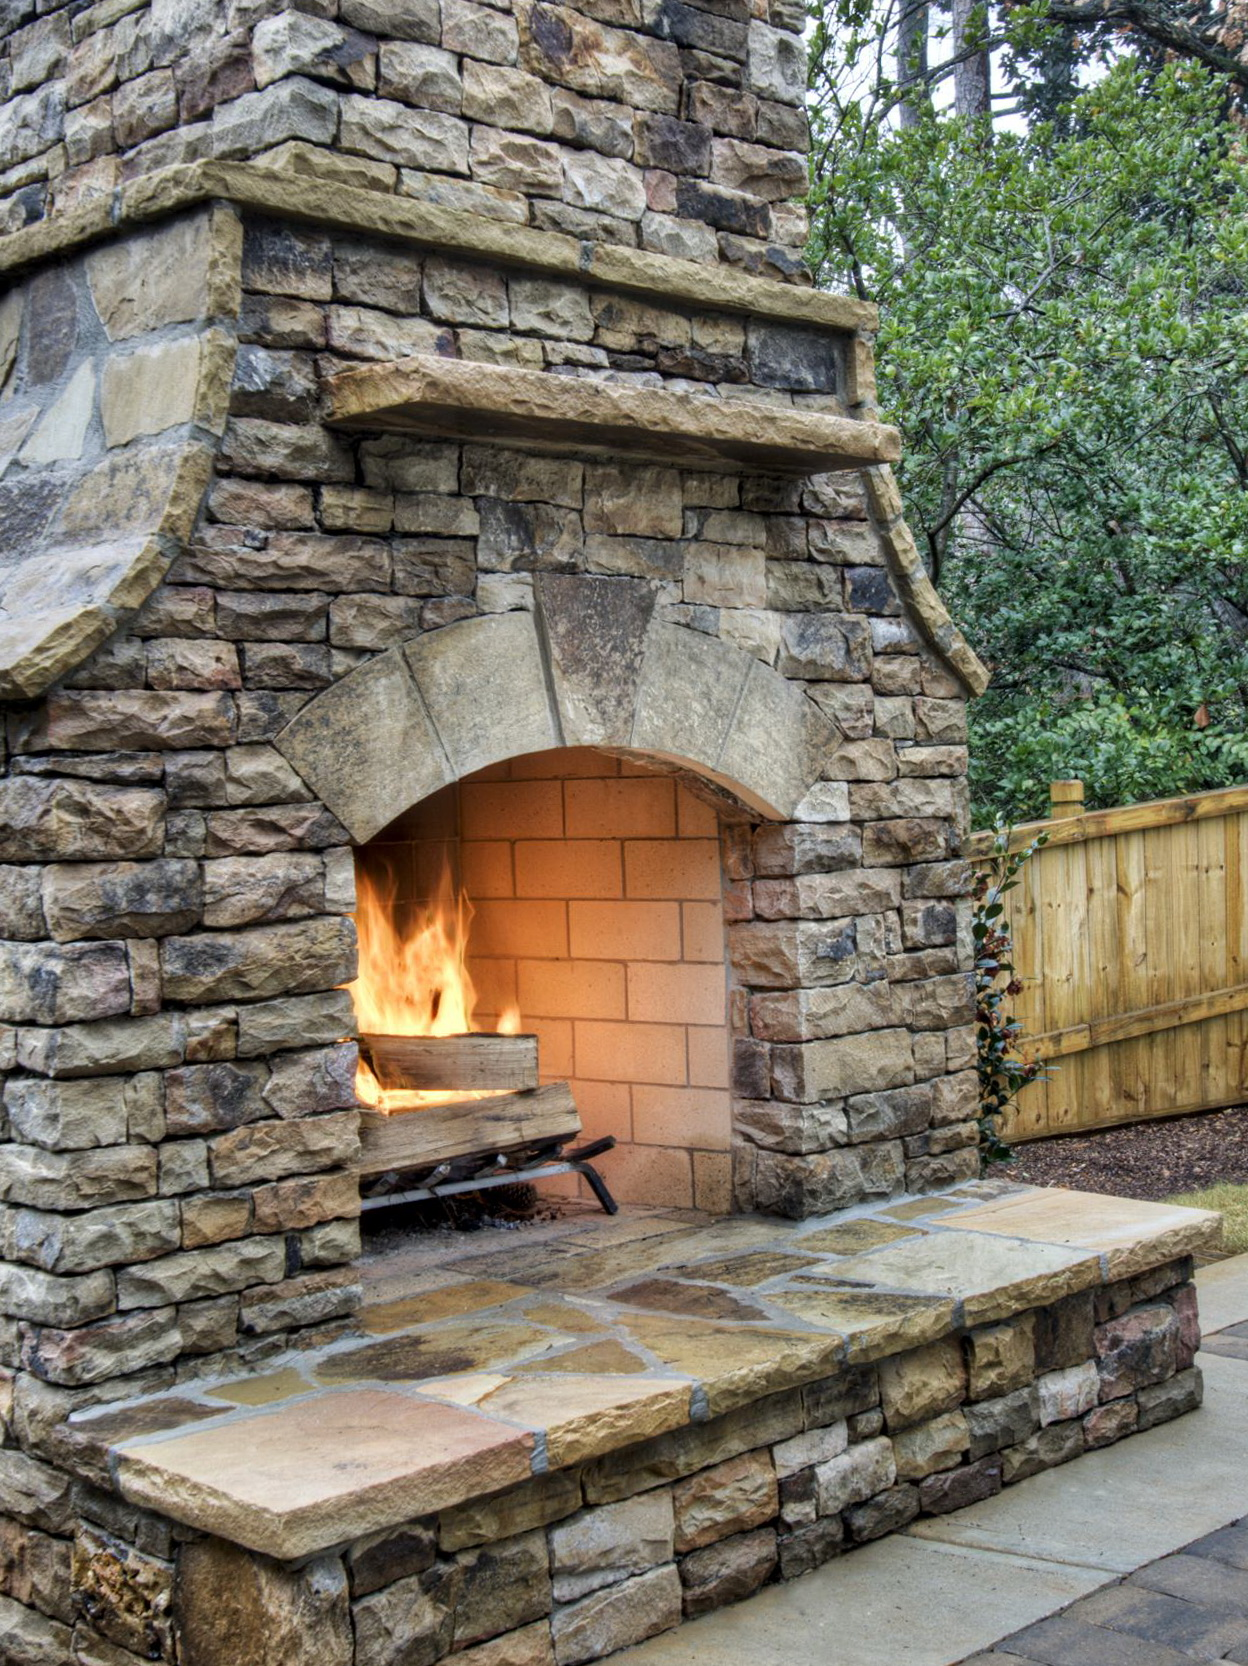 Building outdoor fireplace cinder block home design ideas for How to build a small outdoor fireplace